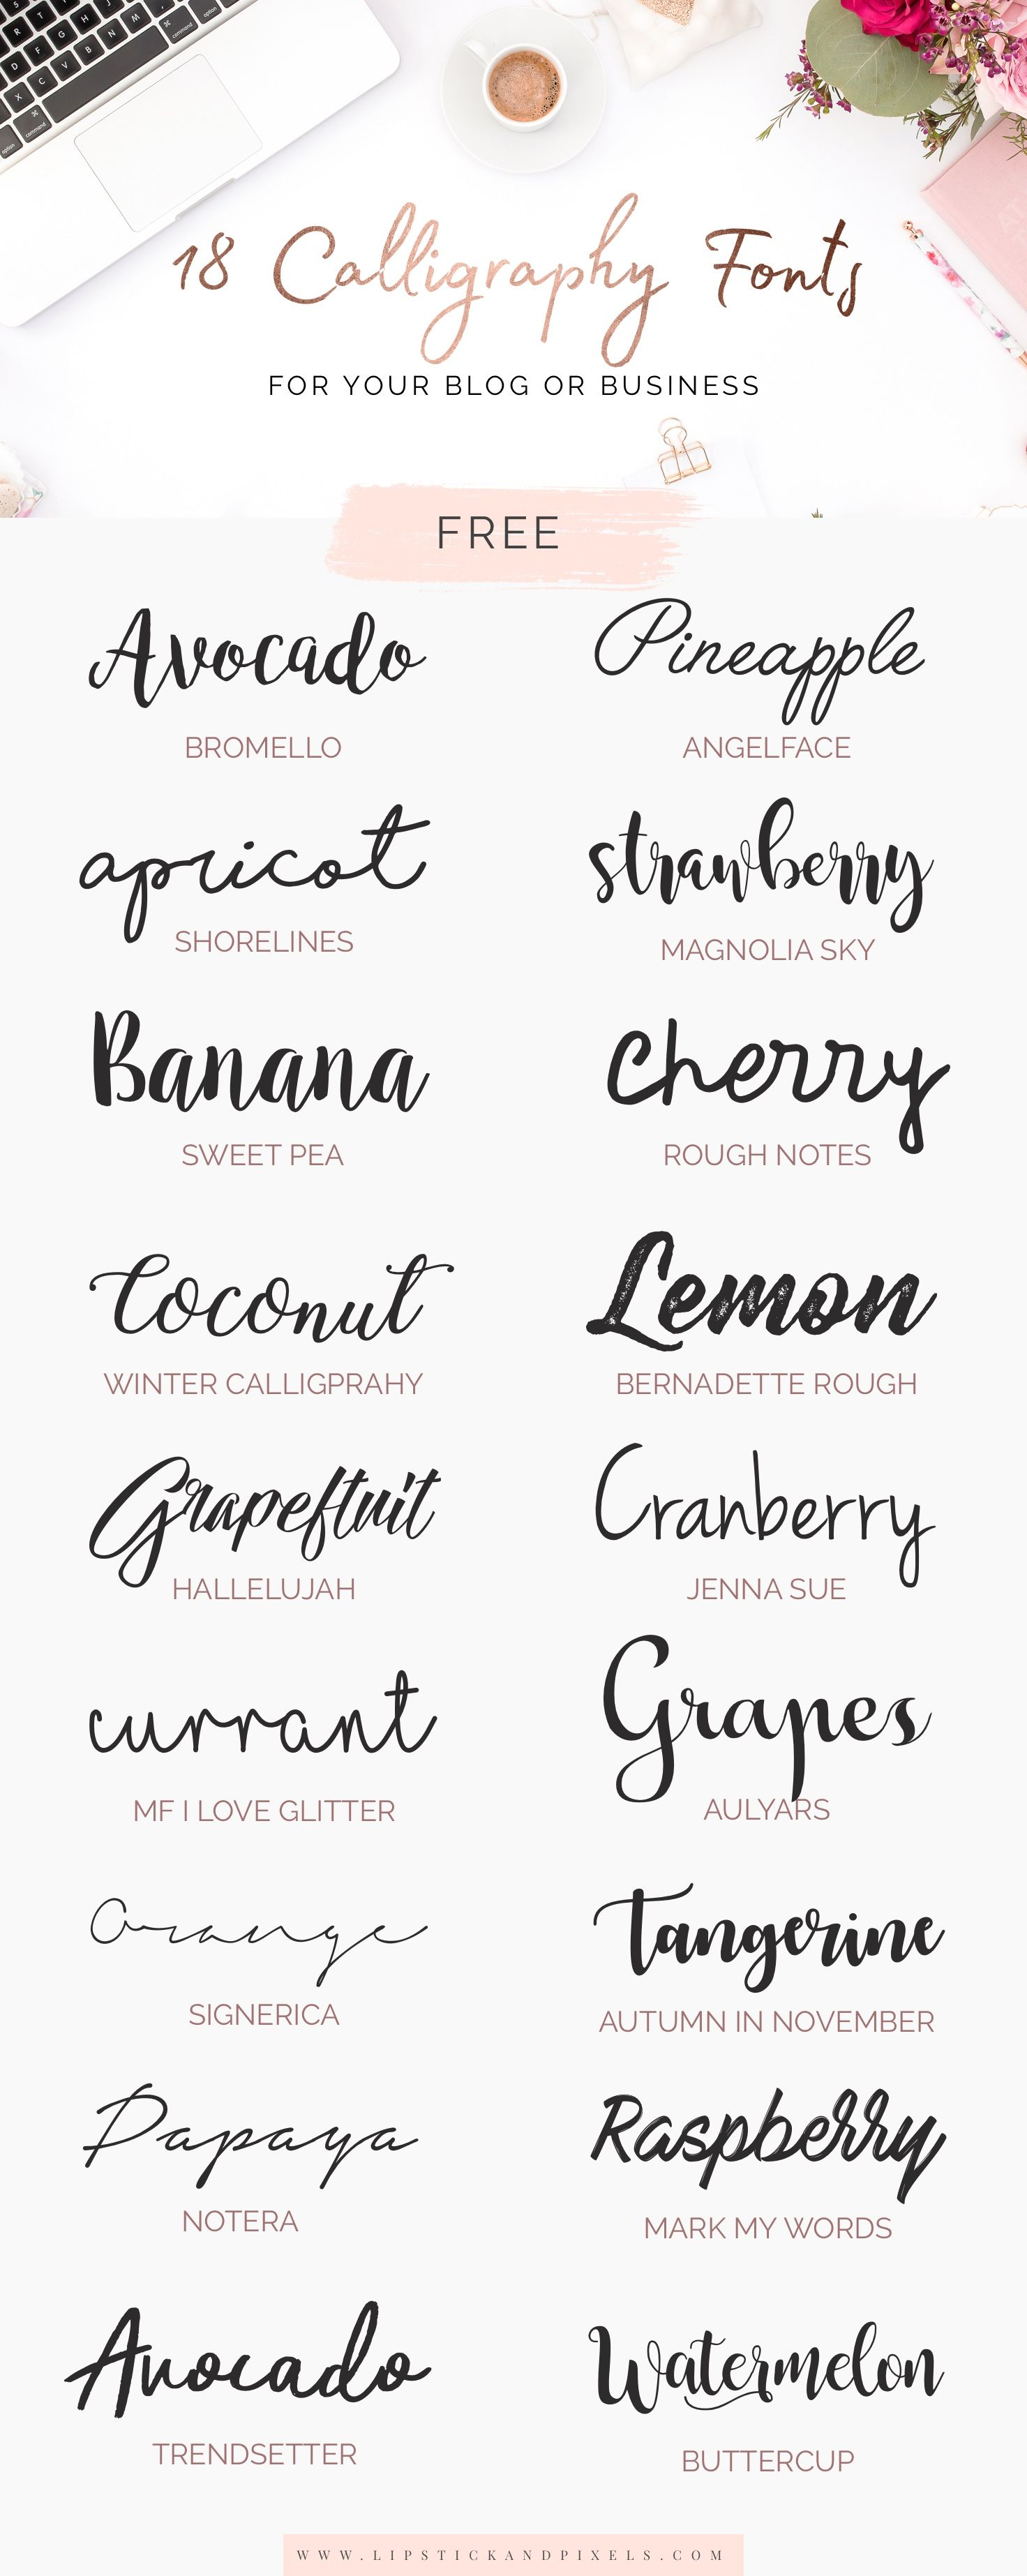 Free Calligraphy Fonts For You Blog Or Business Via